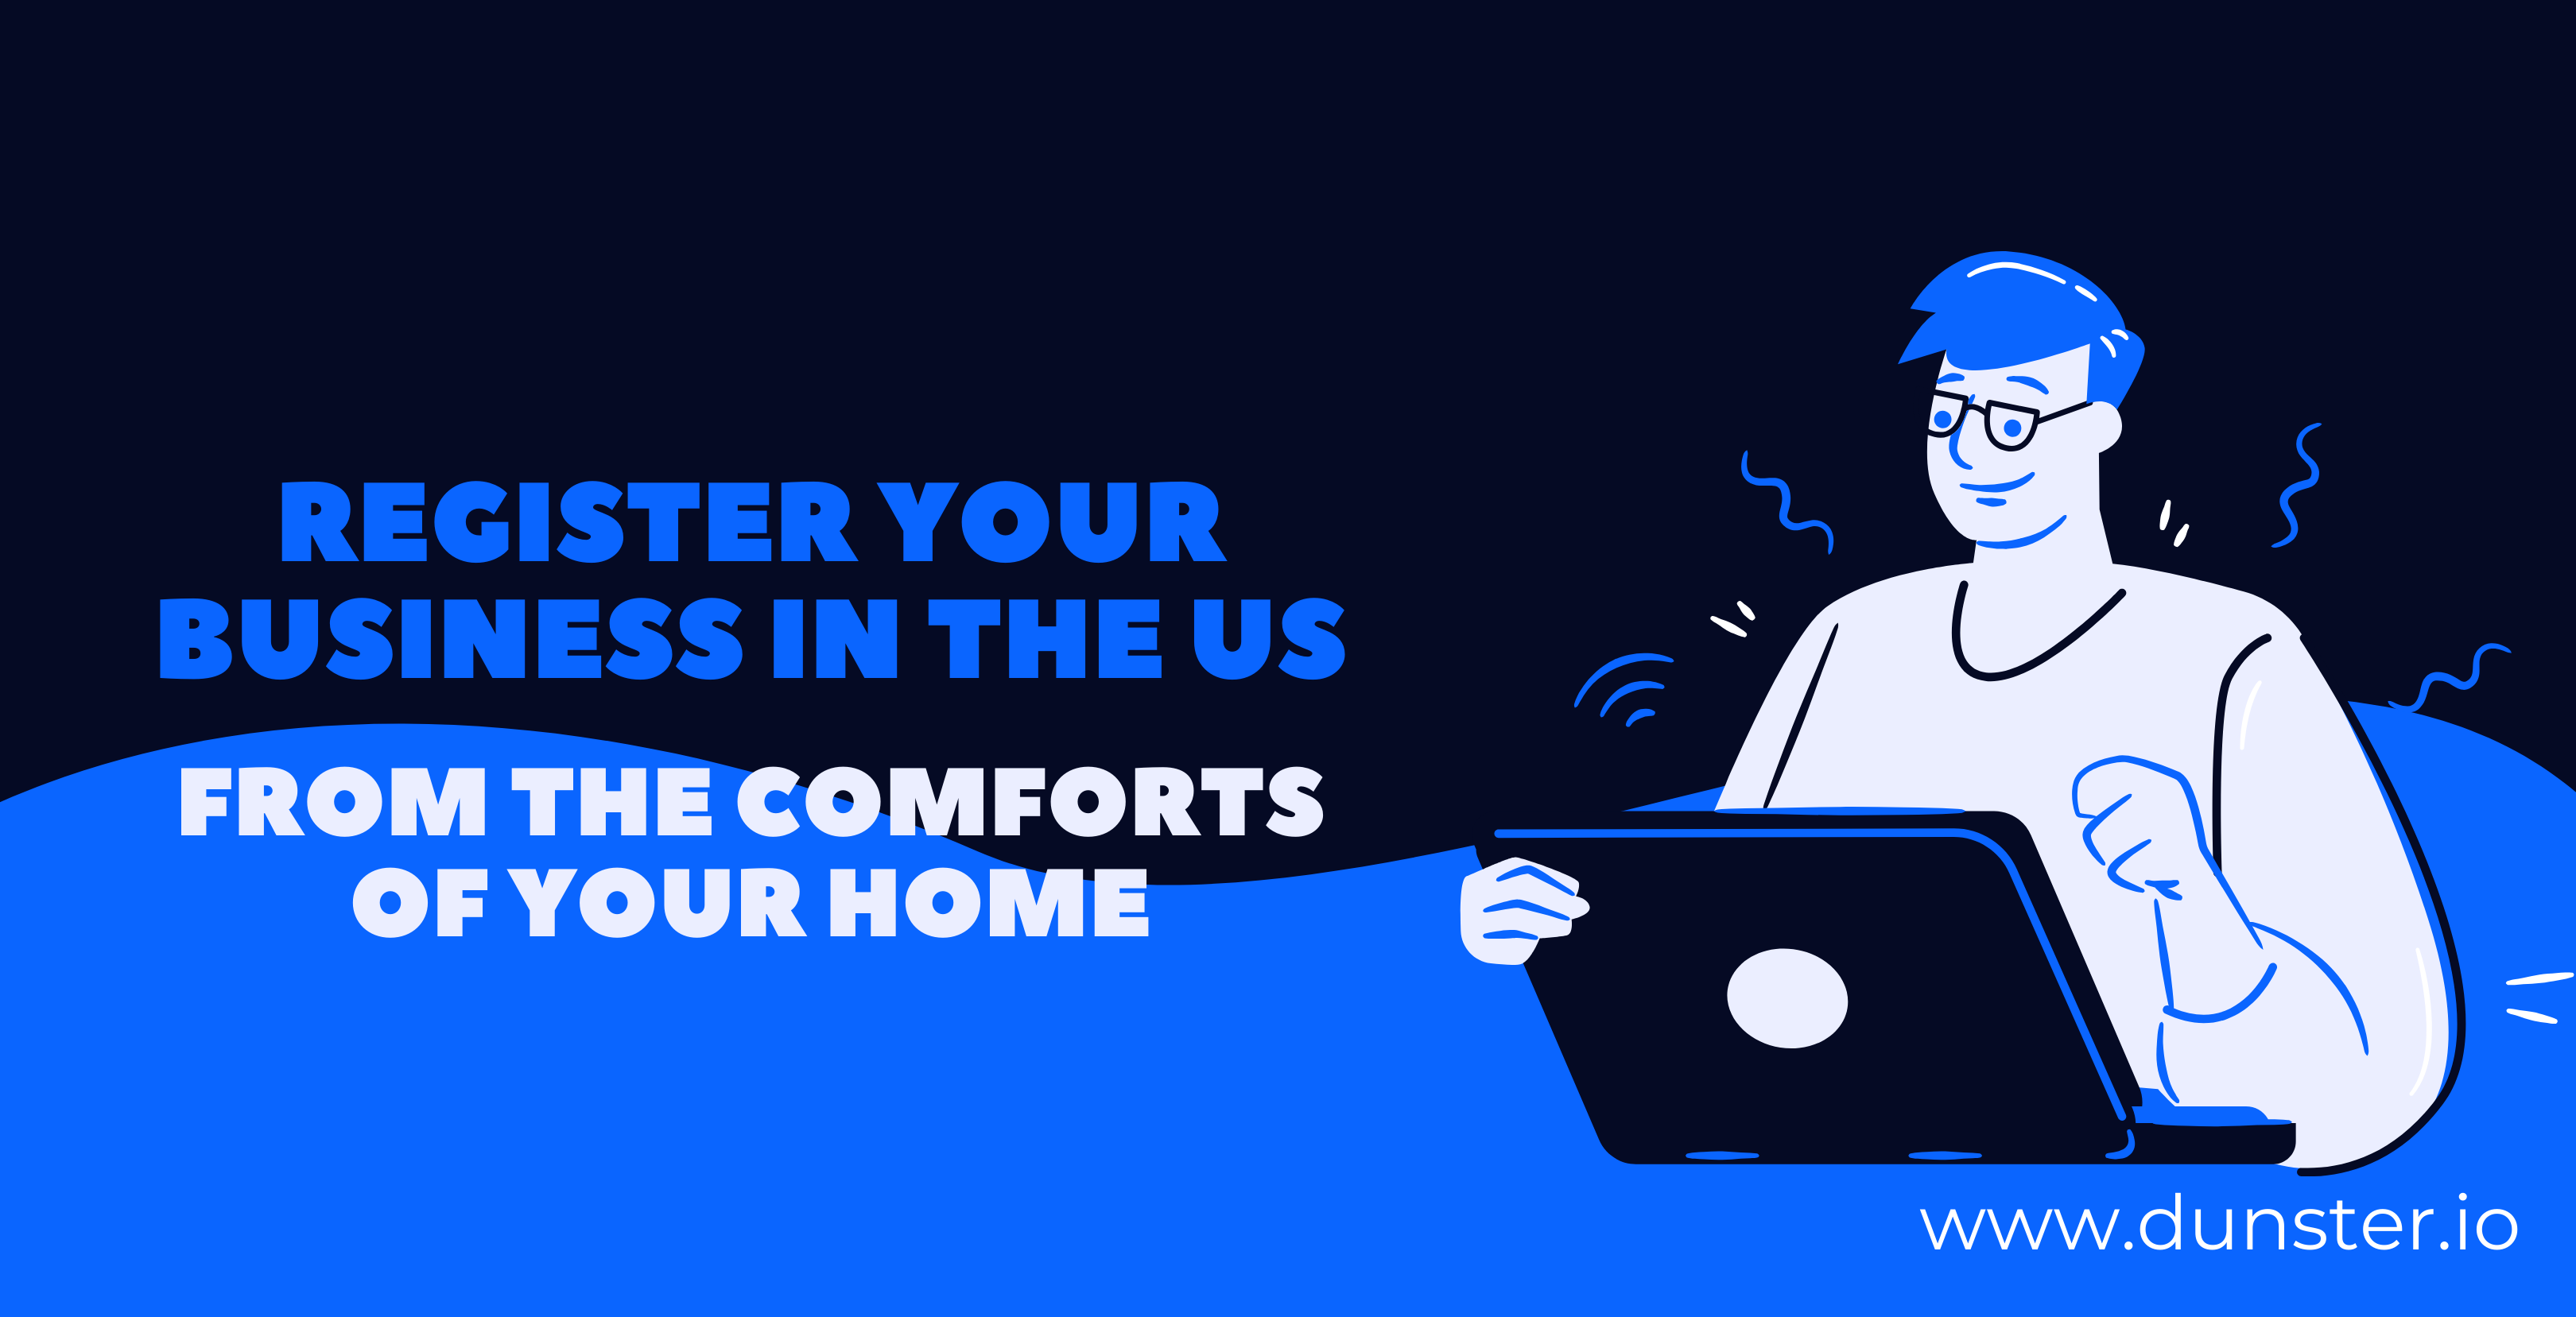 Company registrations can be tough. With Dunster, you can register companies from anywhere. The best, safest, fastest, and easiest way to form us companies.